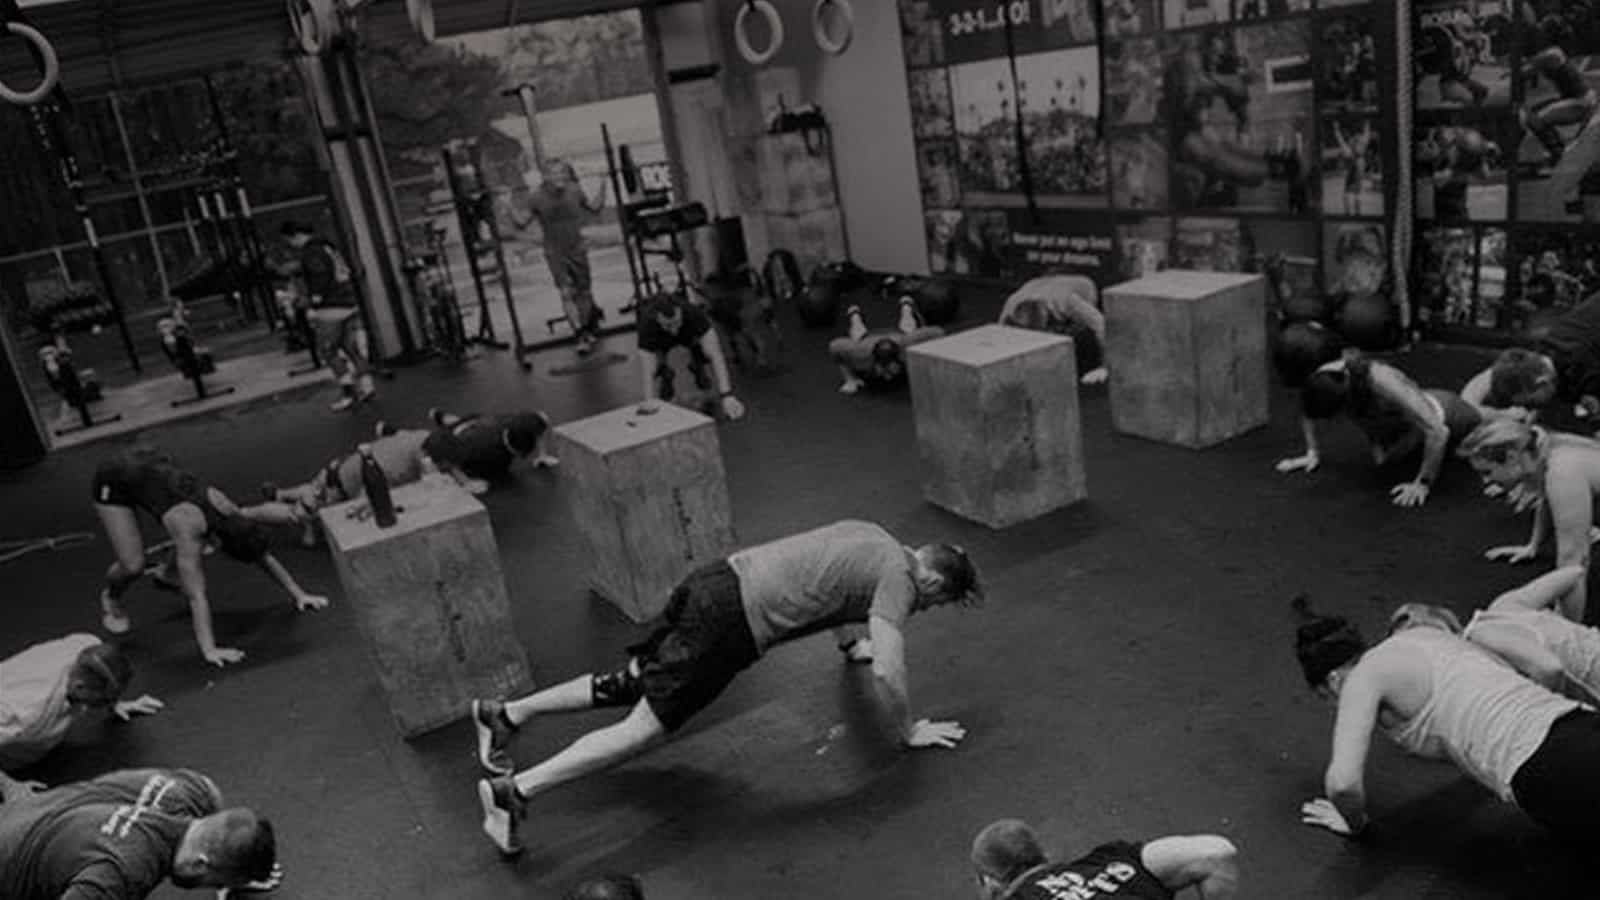 8 Reasons Crossfit is Great for Addiction Recovery